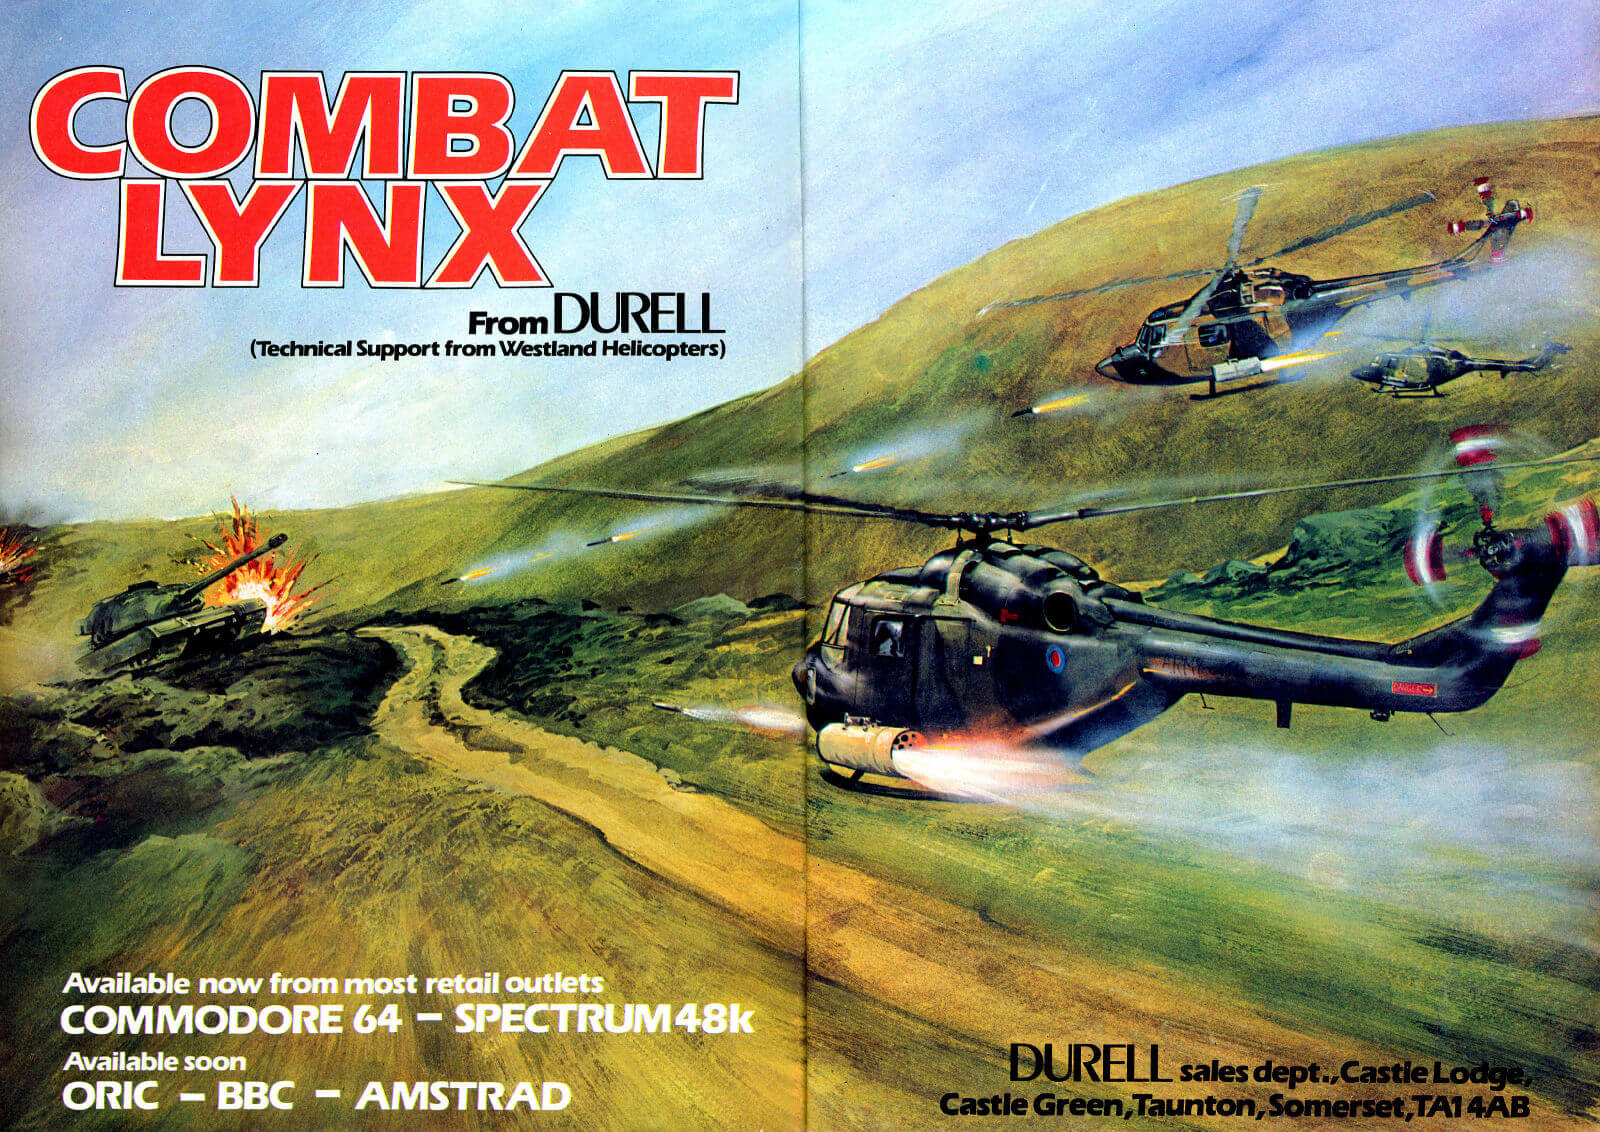 **Description**   A semi-realistic helicopter battle game, viewed from behind. Allied bases must be protected from air and land attacks, and soldiers transported between them.   The Combat Lynx is equipped with various weapons, including mines and heat-seeking missiles. A map enables the player to keep track of enemy forces. Includes various difficulty levels.  **Development**   During the game's development, Durell sent its programmers to try out flying a real Westland helicopter, in the hope of improving the game's realism.